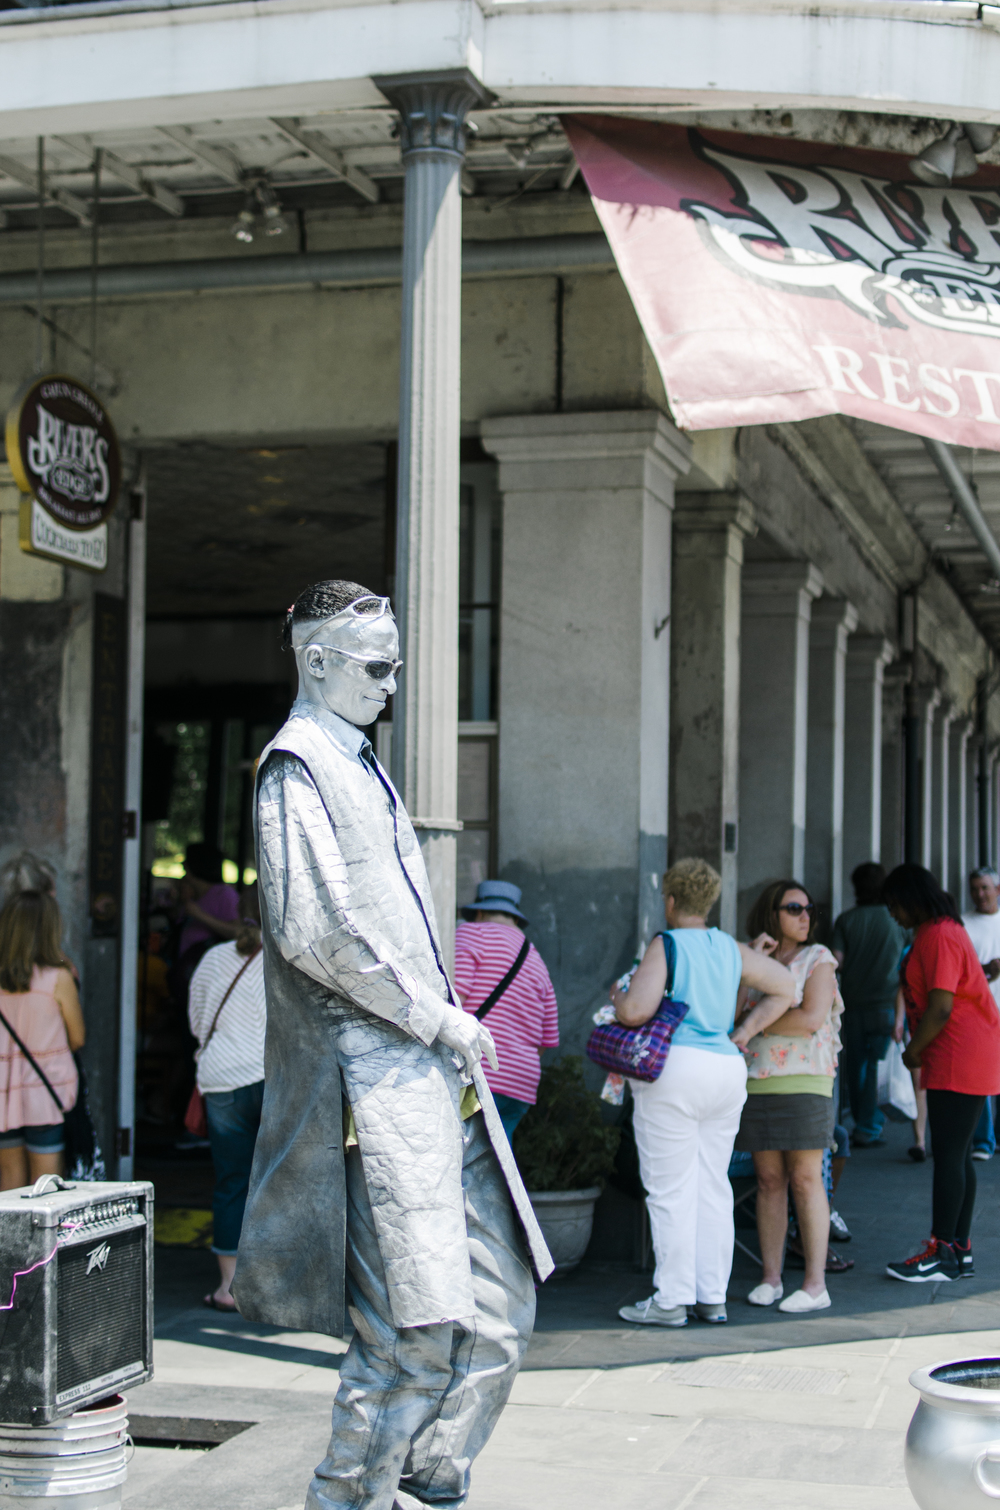 Metal man doing his thing in Jackson Square. This city is filled with artists and performers that make New Orleans a place you want to enjoy and visit.